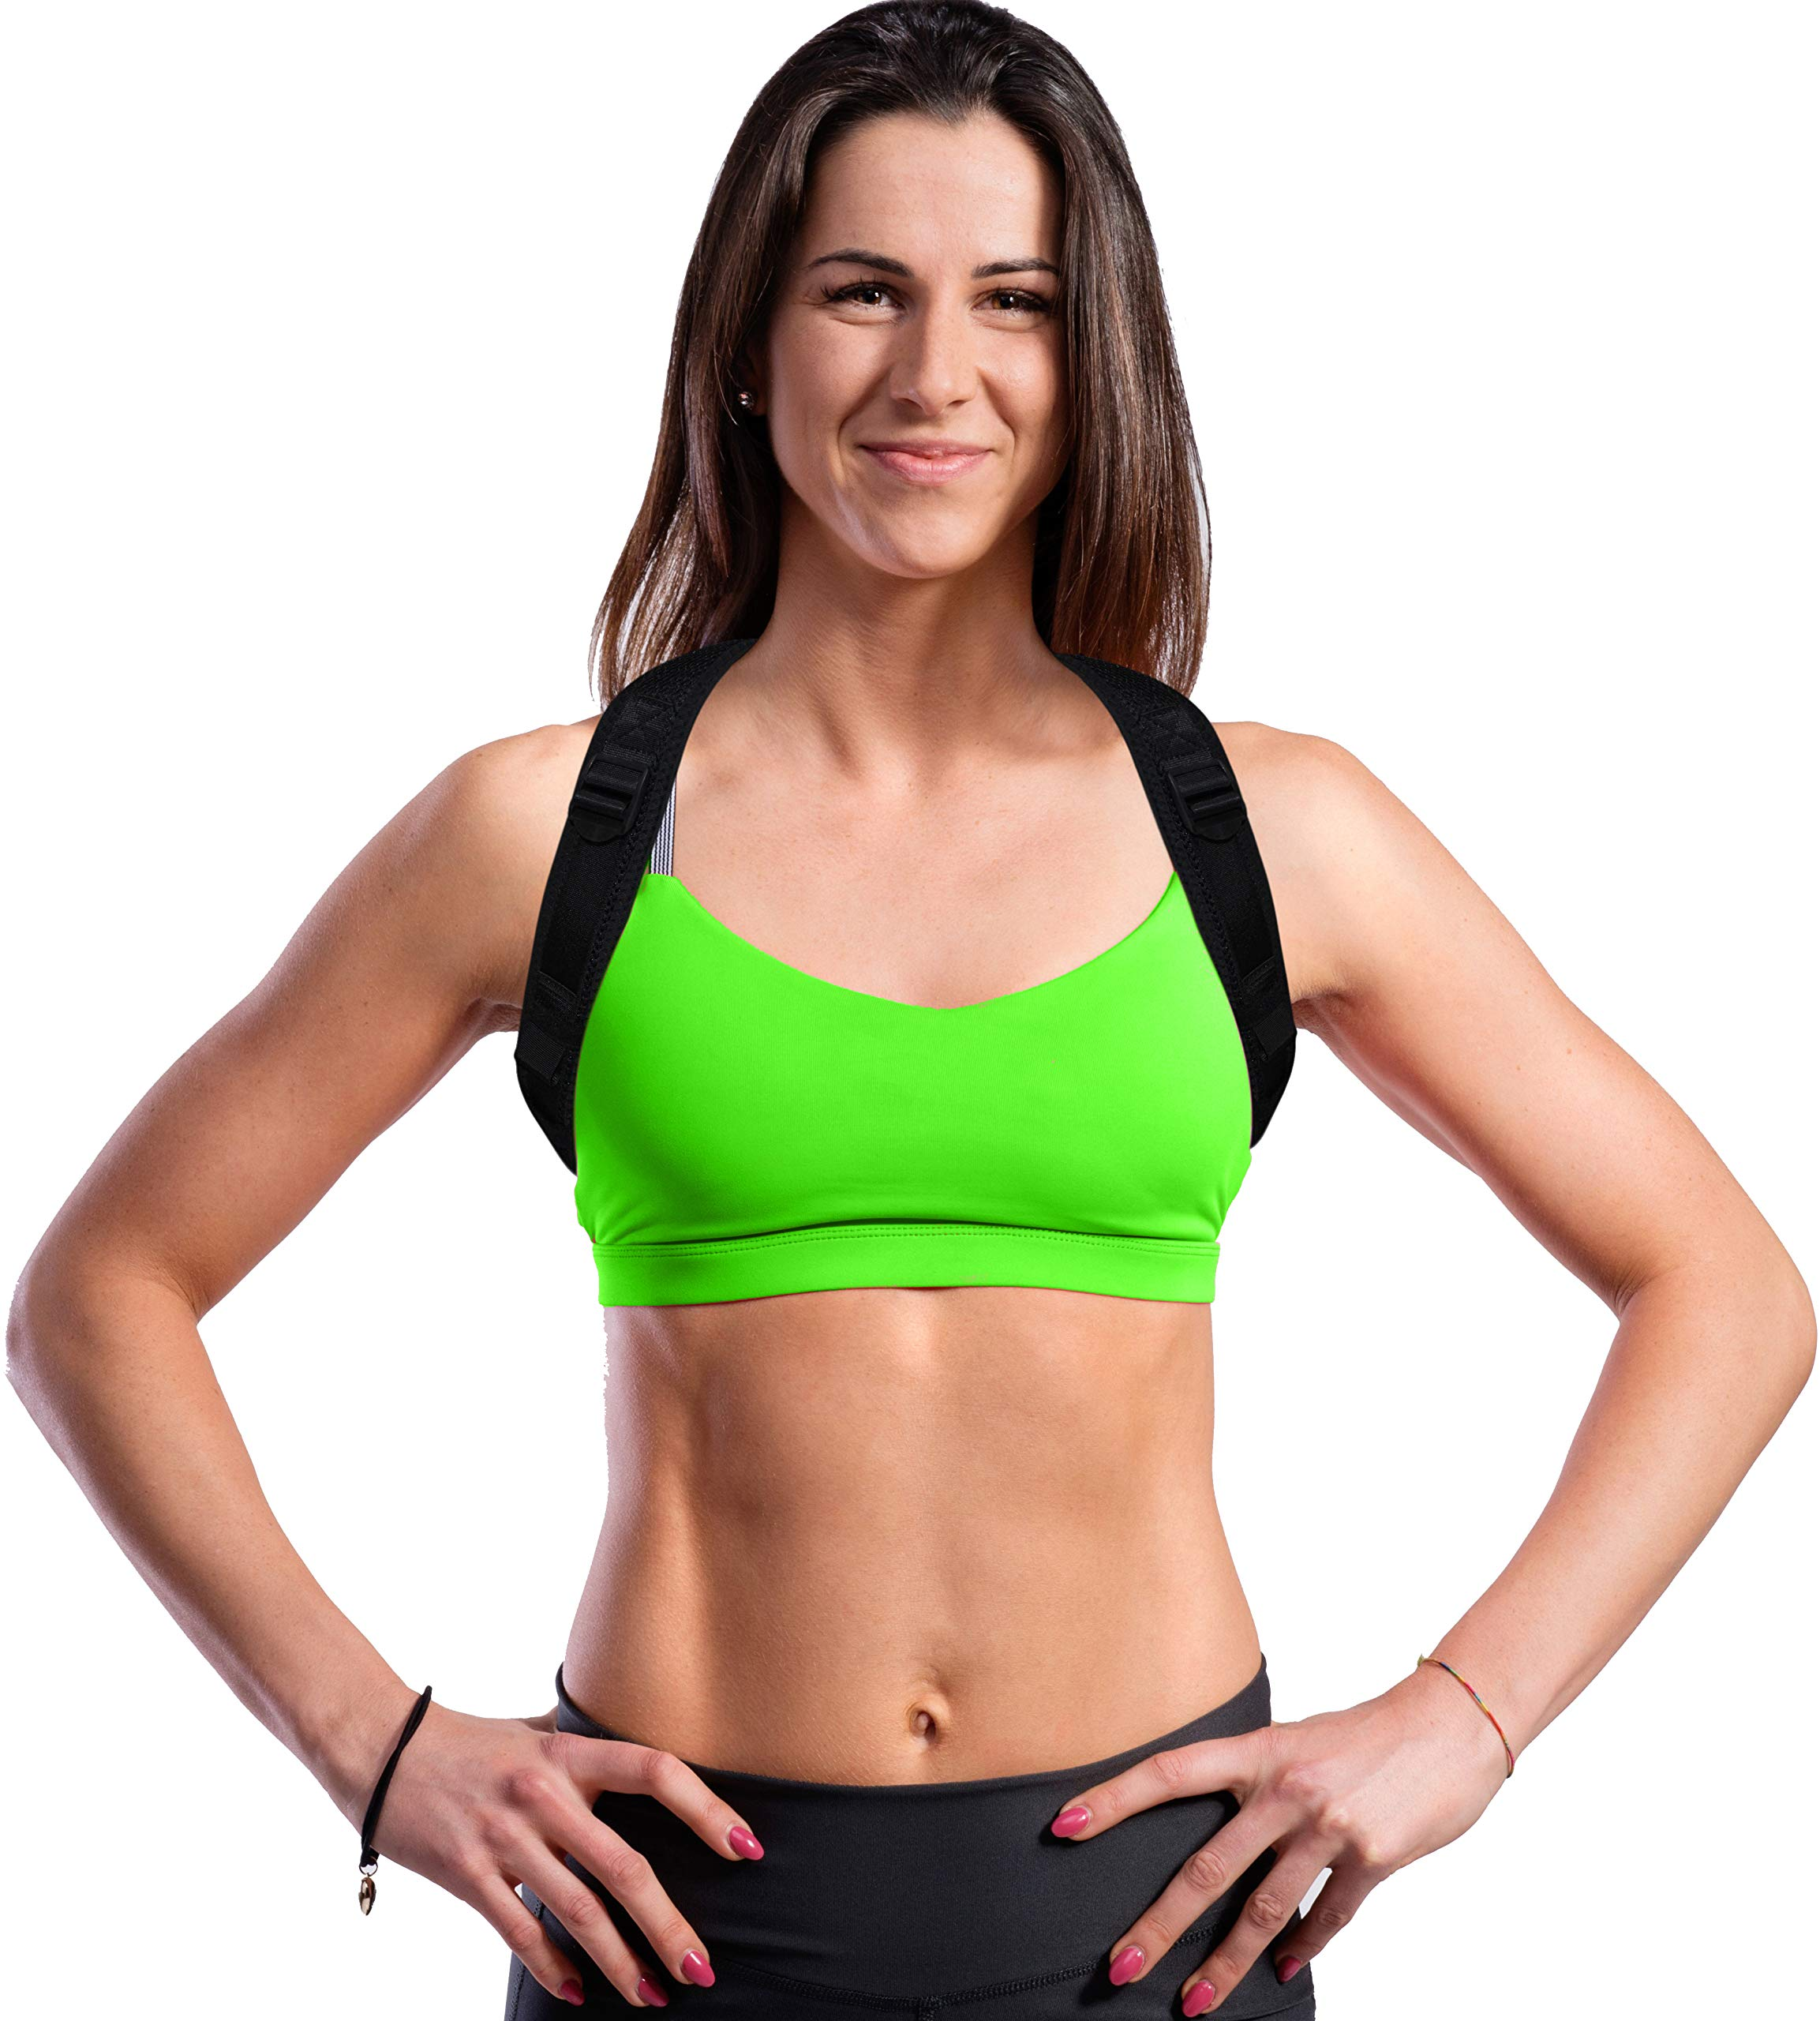 Posture Brace for Women and Men, Comfortable and Sleek Posture Corrector Relieves Back Pain and Improves Posture So You Can Feel Better and Be Happier, Fits Up To 48 Inch Chest